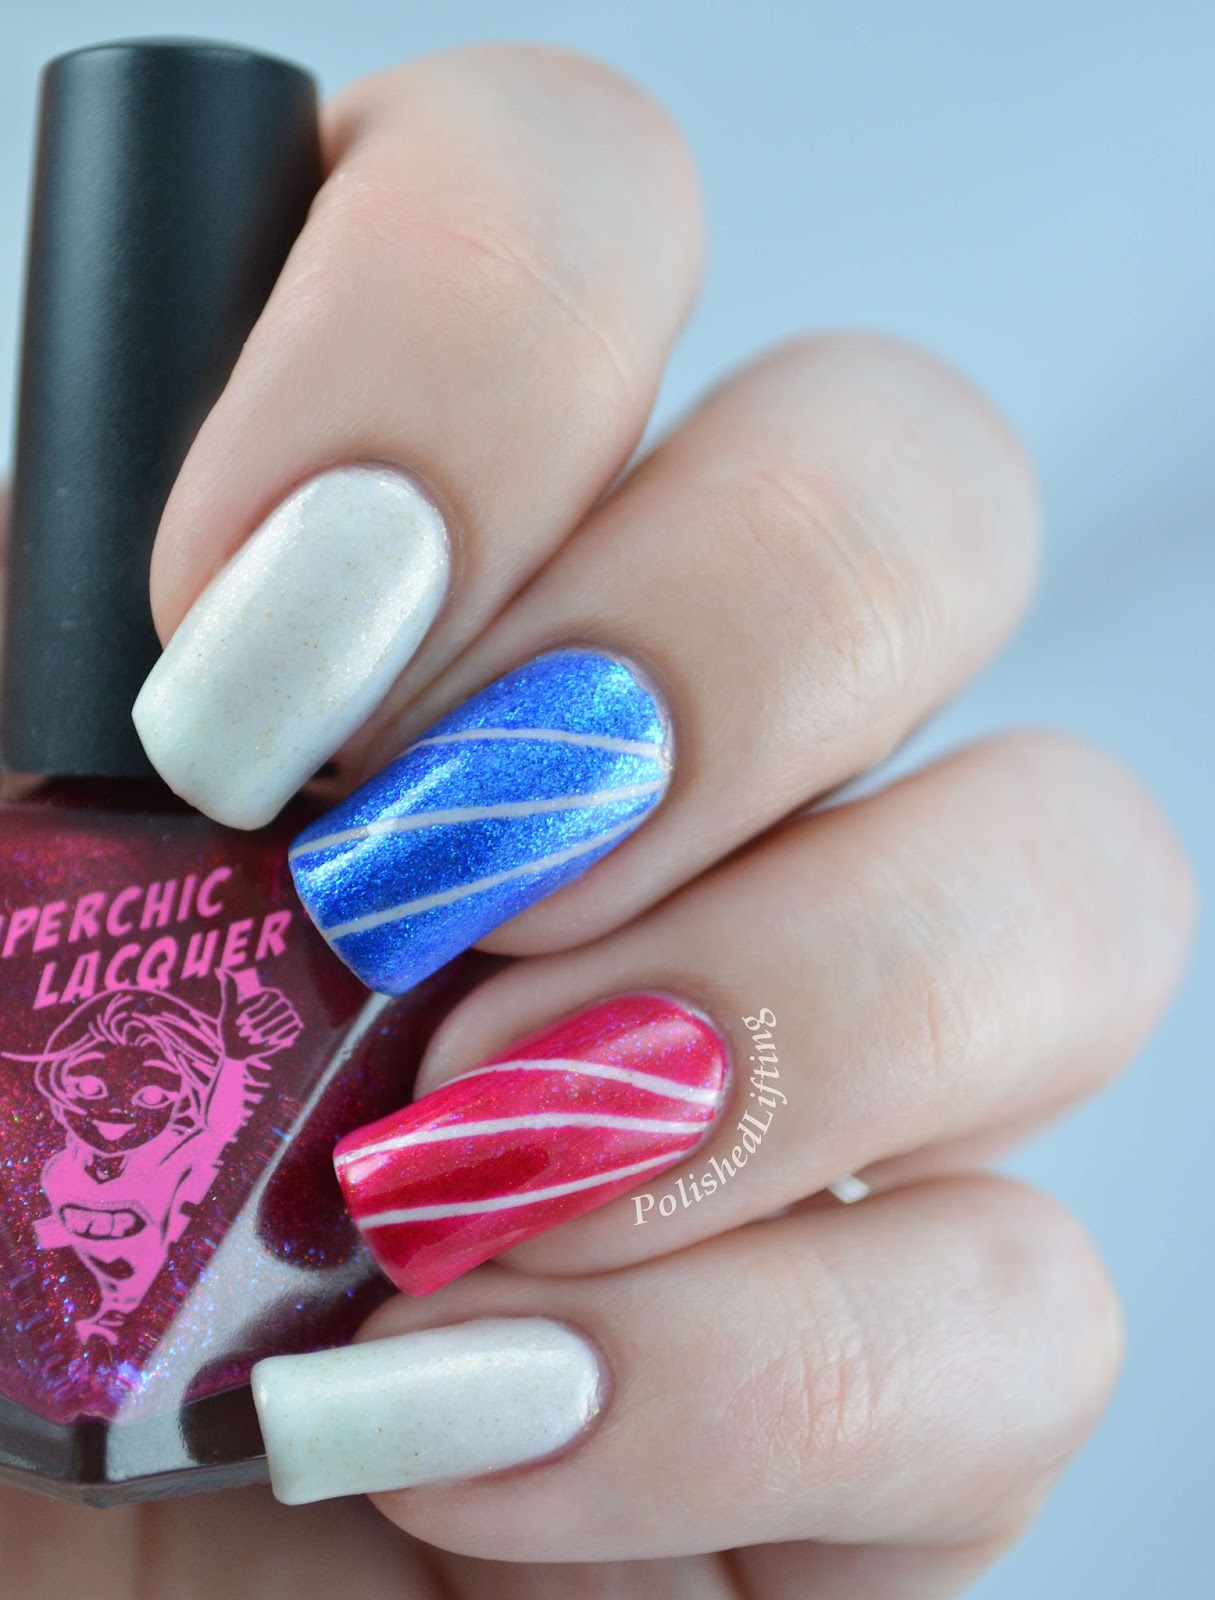 SuperChic Lacquer American Woman Trio Lady Liberty American Honey She's a Firecracker